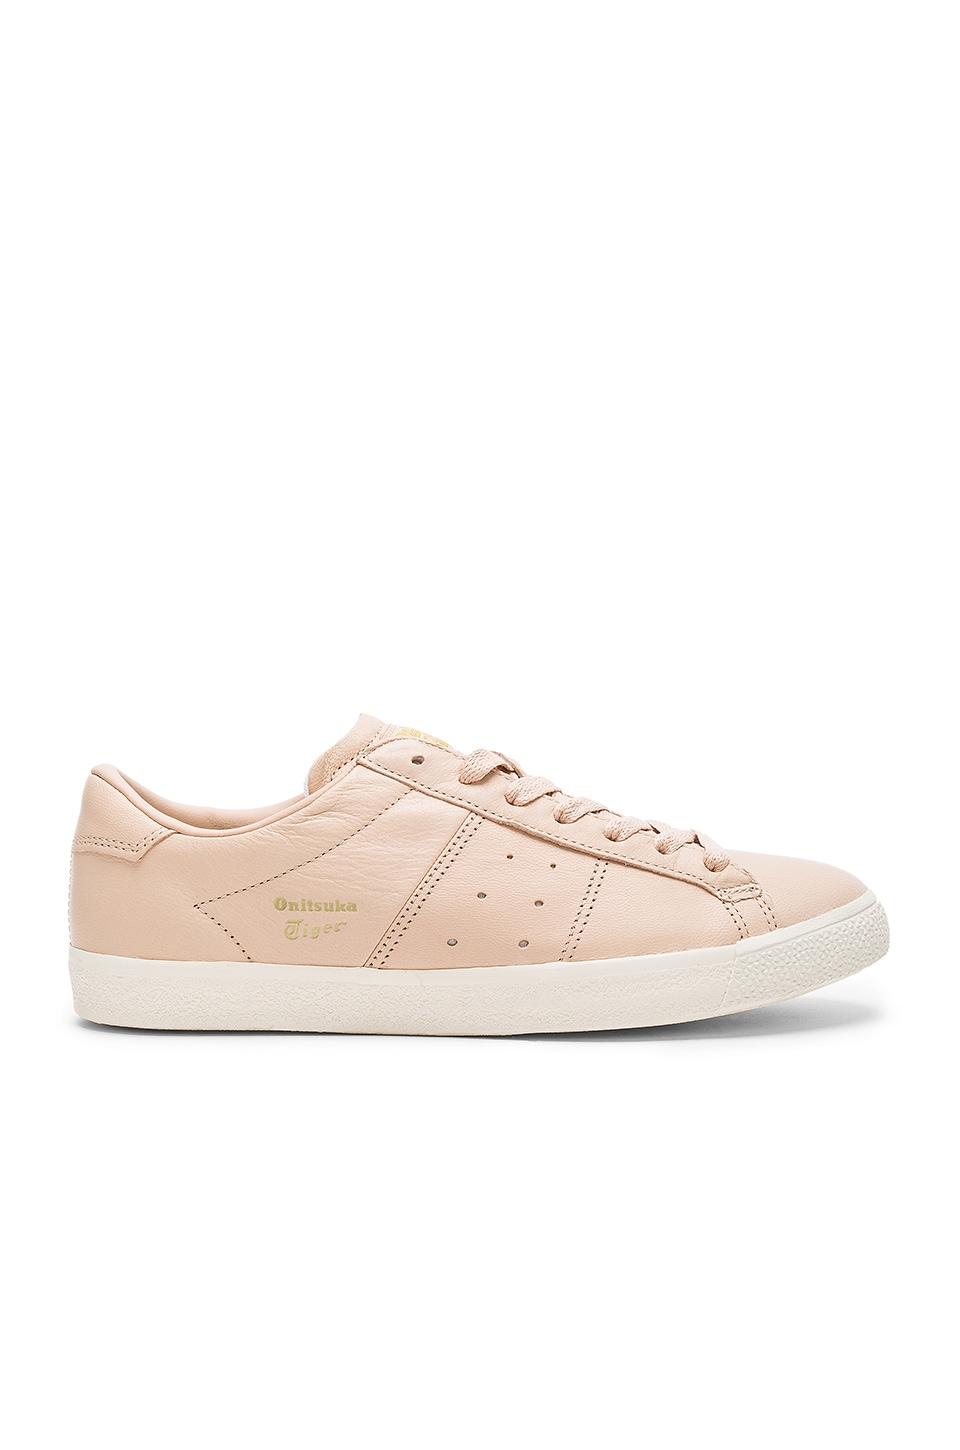 Onitsuka Tiger Lawnship Sneaker in Sand & Sand